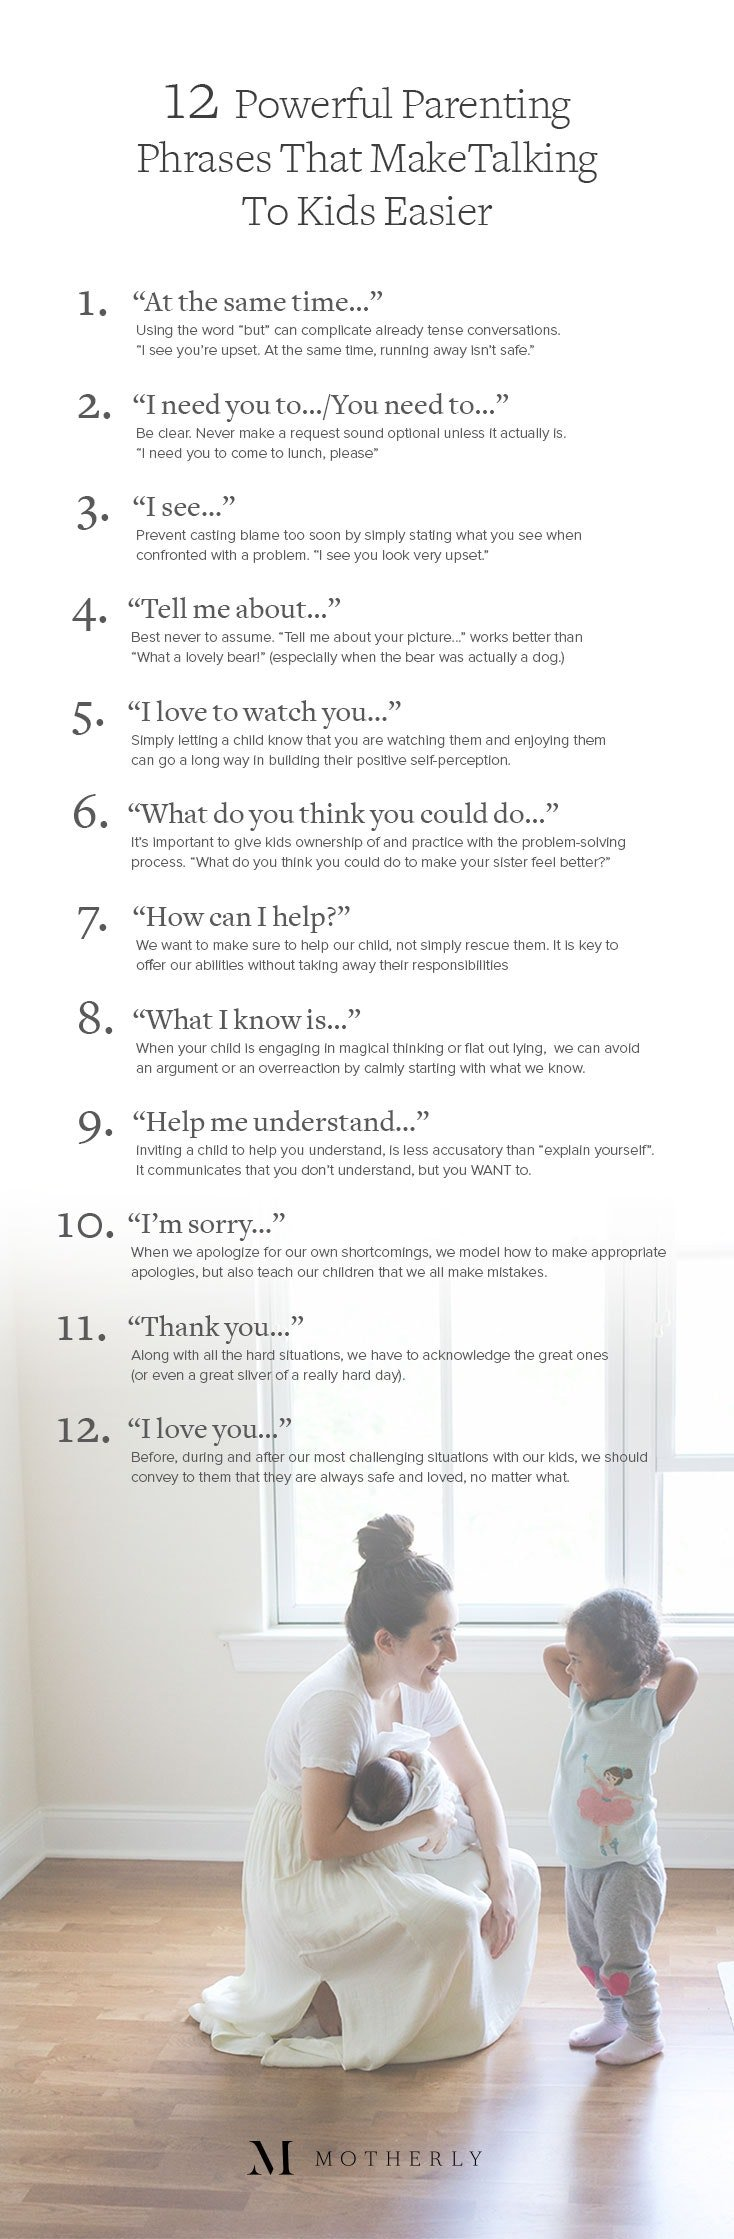 12 Powerful Parenting Phrases That Make Talking To Kids Easier